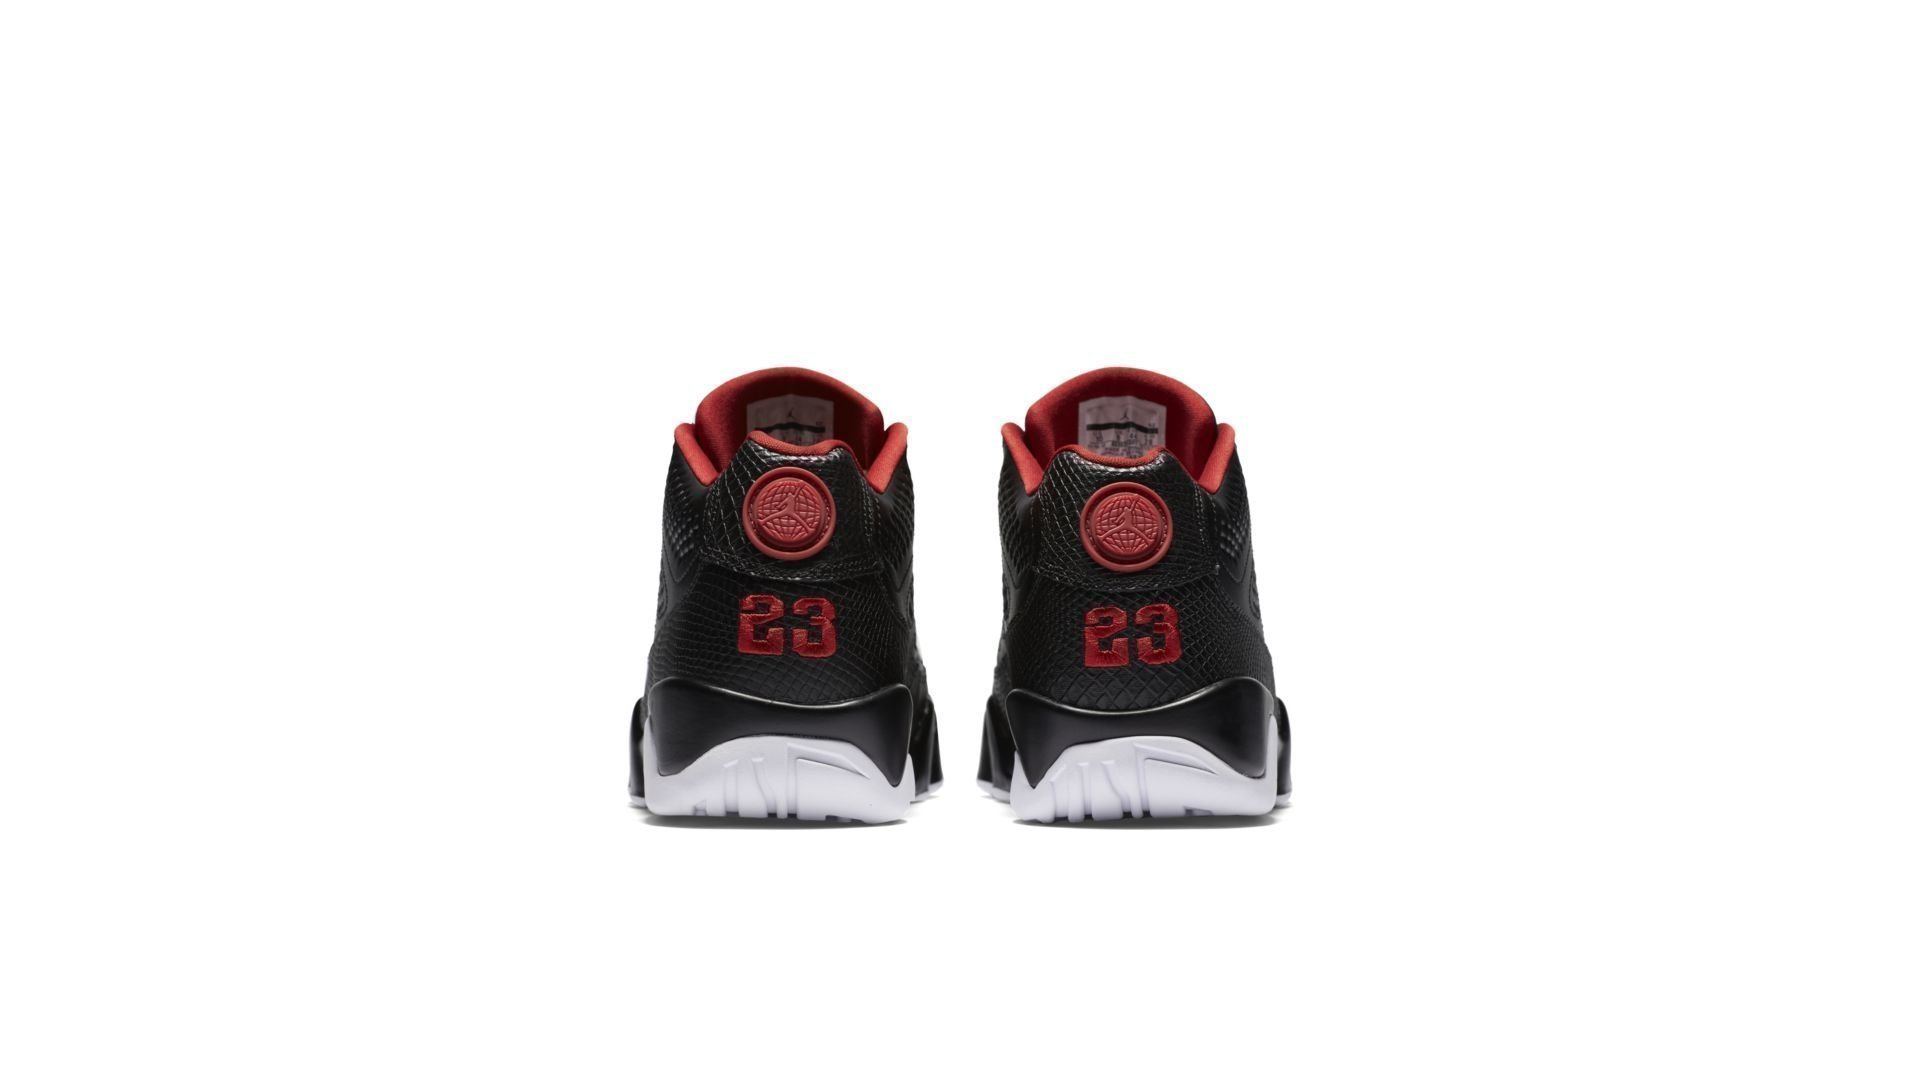 Jordan 9 Retro Low Snakeskin (832822-001)